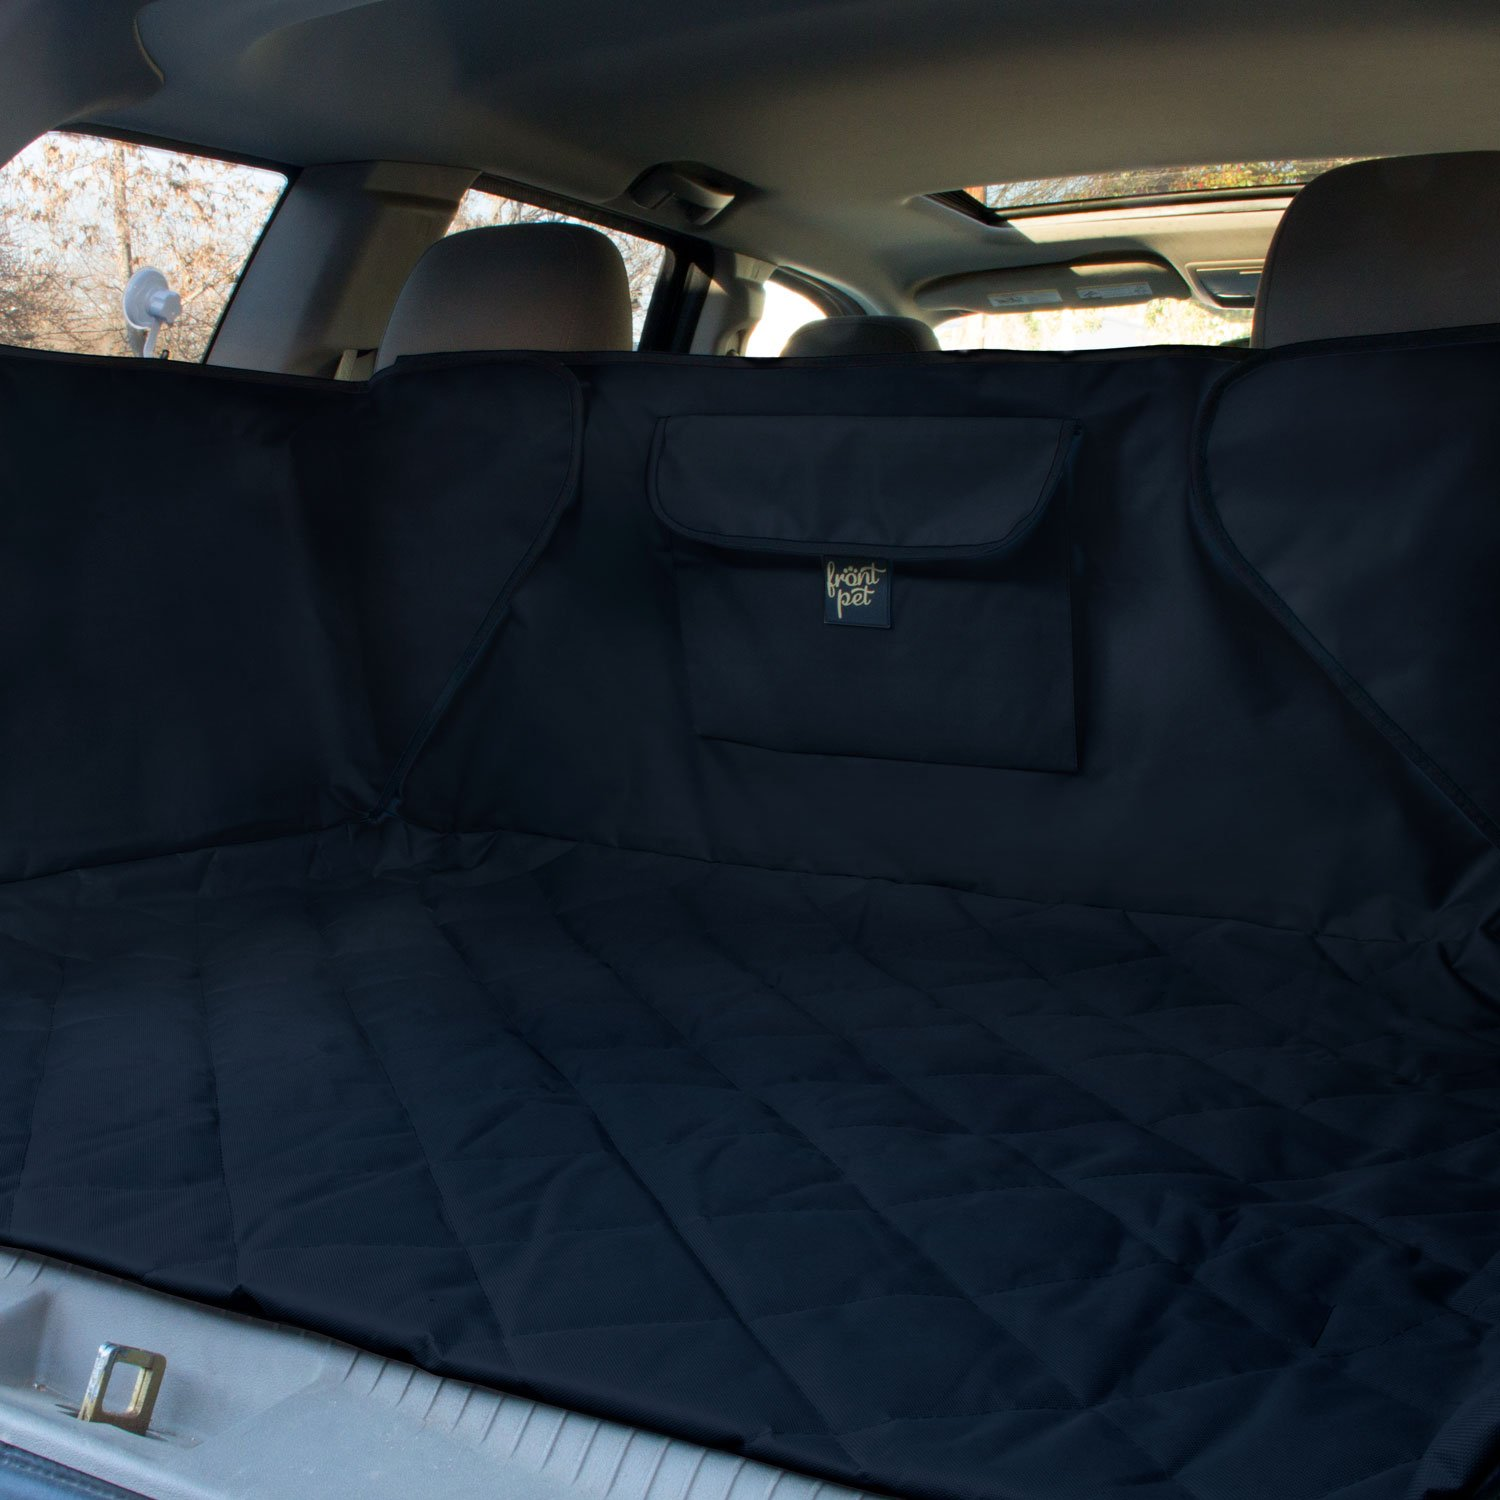 FrontPet Extended Width Quilted Dog Cargo Cover for SUV Universal Fit for Any Animal. Durable Liner Covers and Protects Your Vehicle by FrontPet (Image #2)